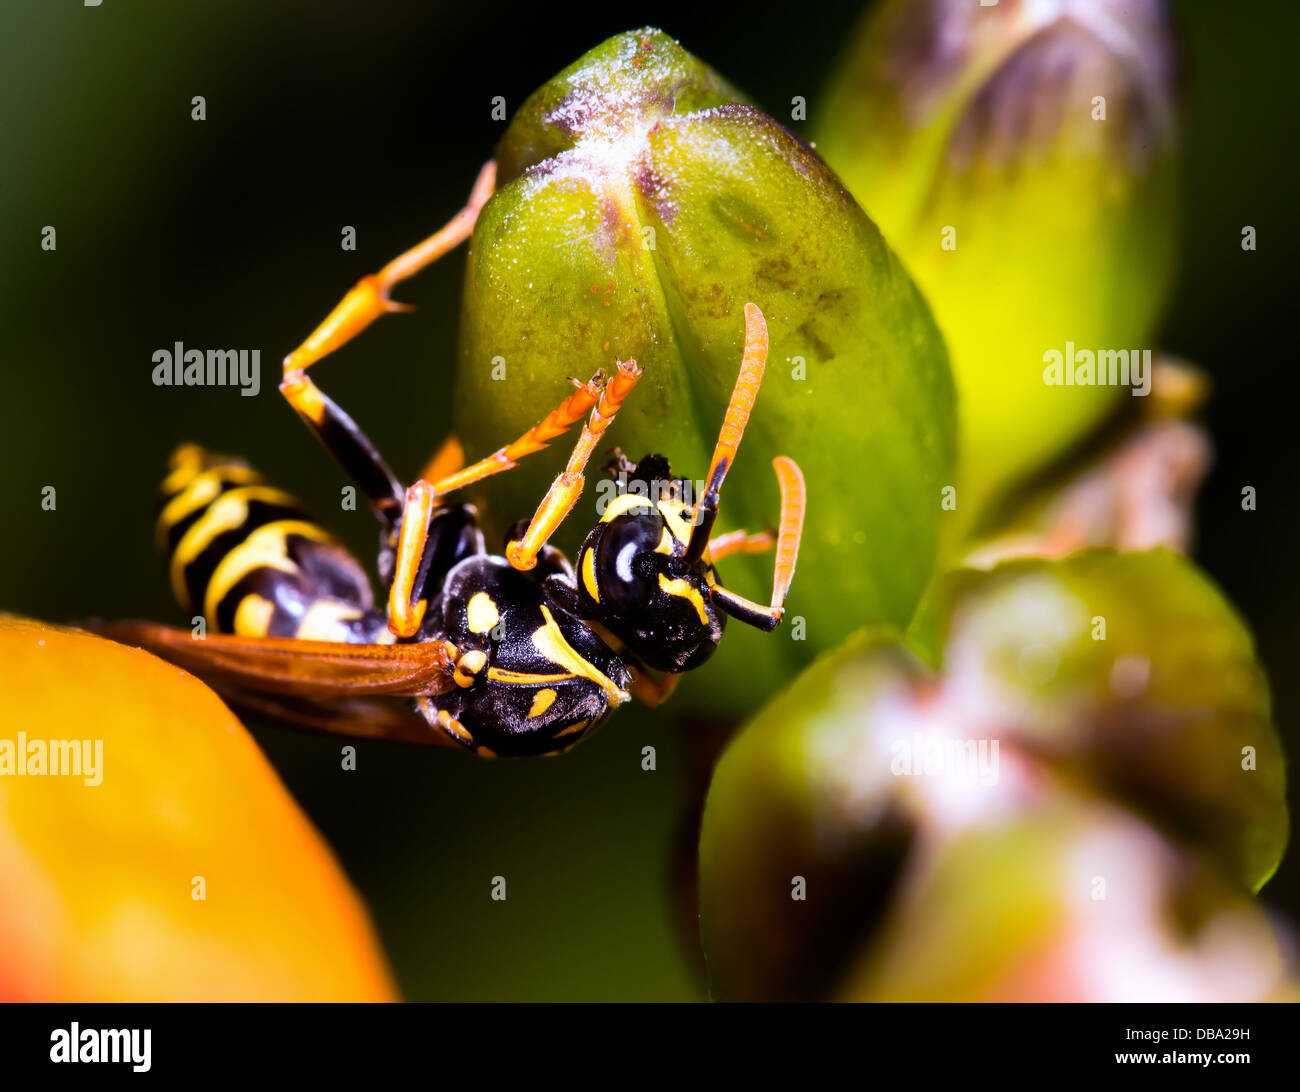 Vespula vulgaris, Yellow jacket wasp on daylily buds in Chicago's IL Lurie Garden in July. - Stock Image